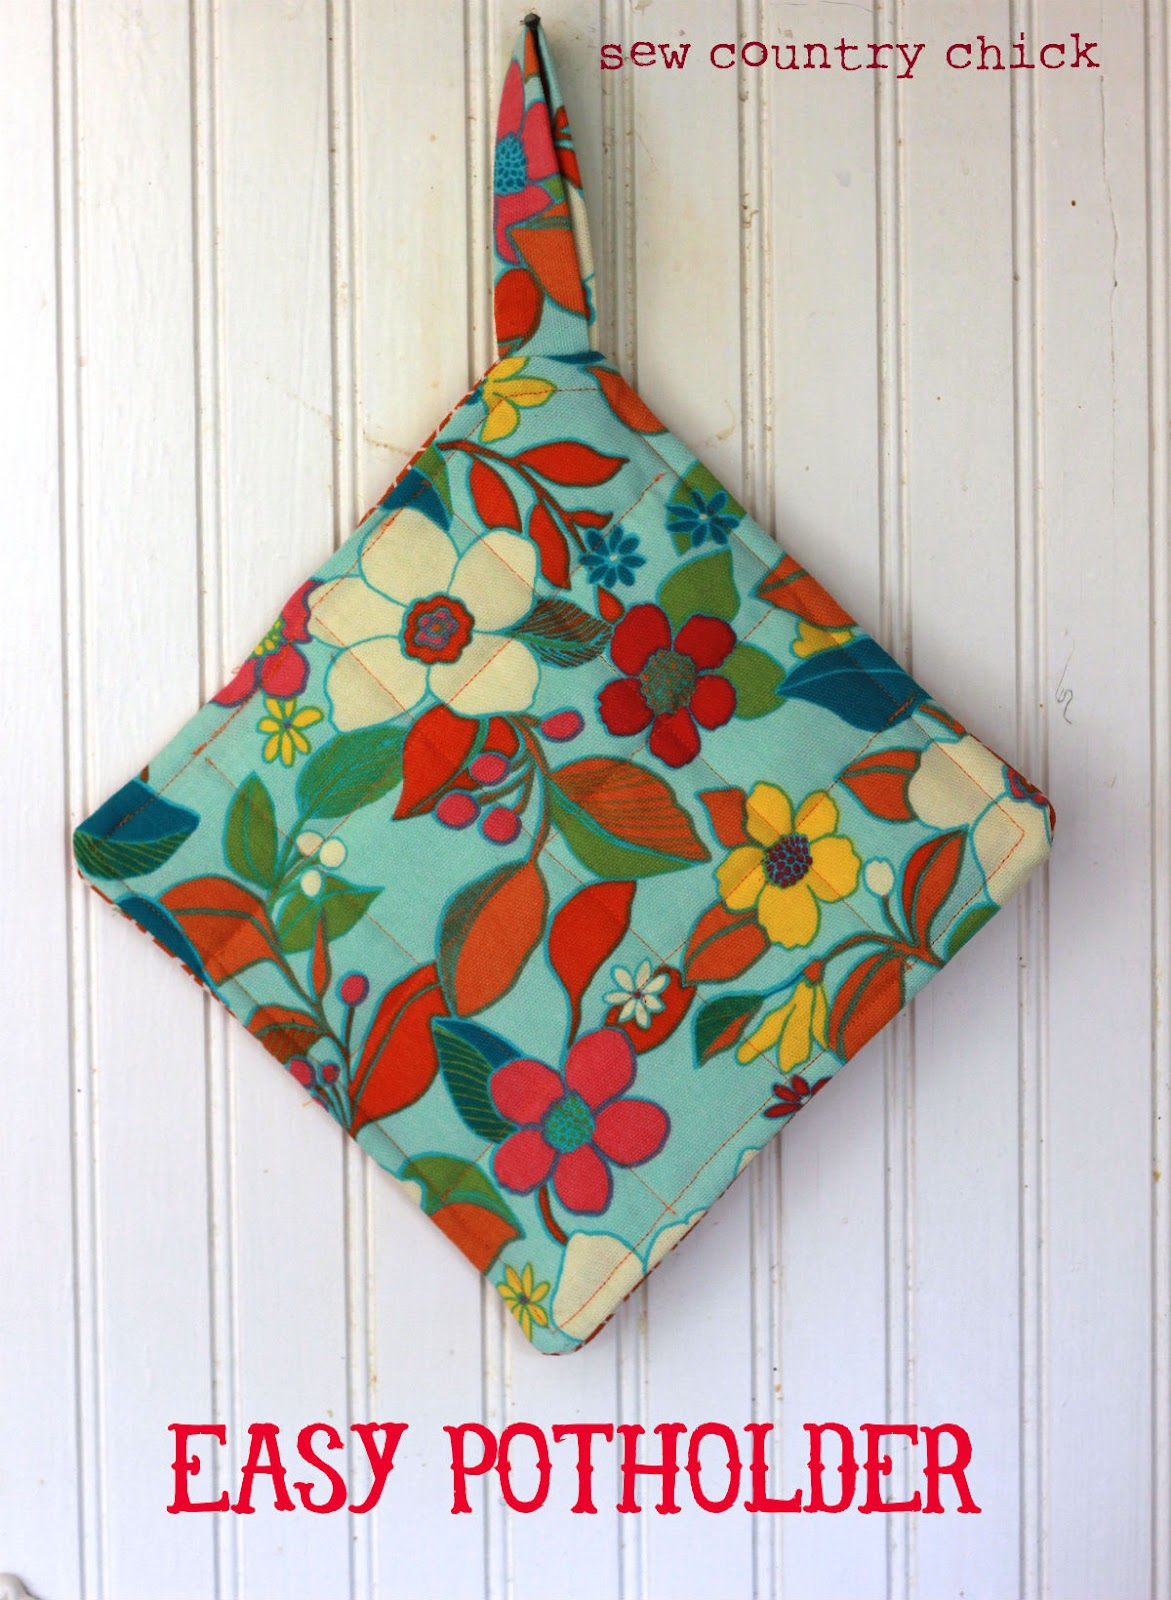 Easy Sewing Projects For Beginners: Sewing With Kids: Easy Potholder